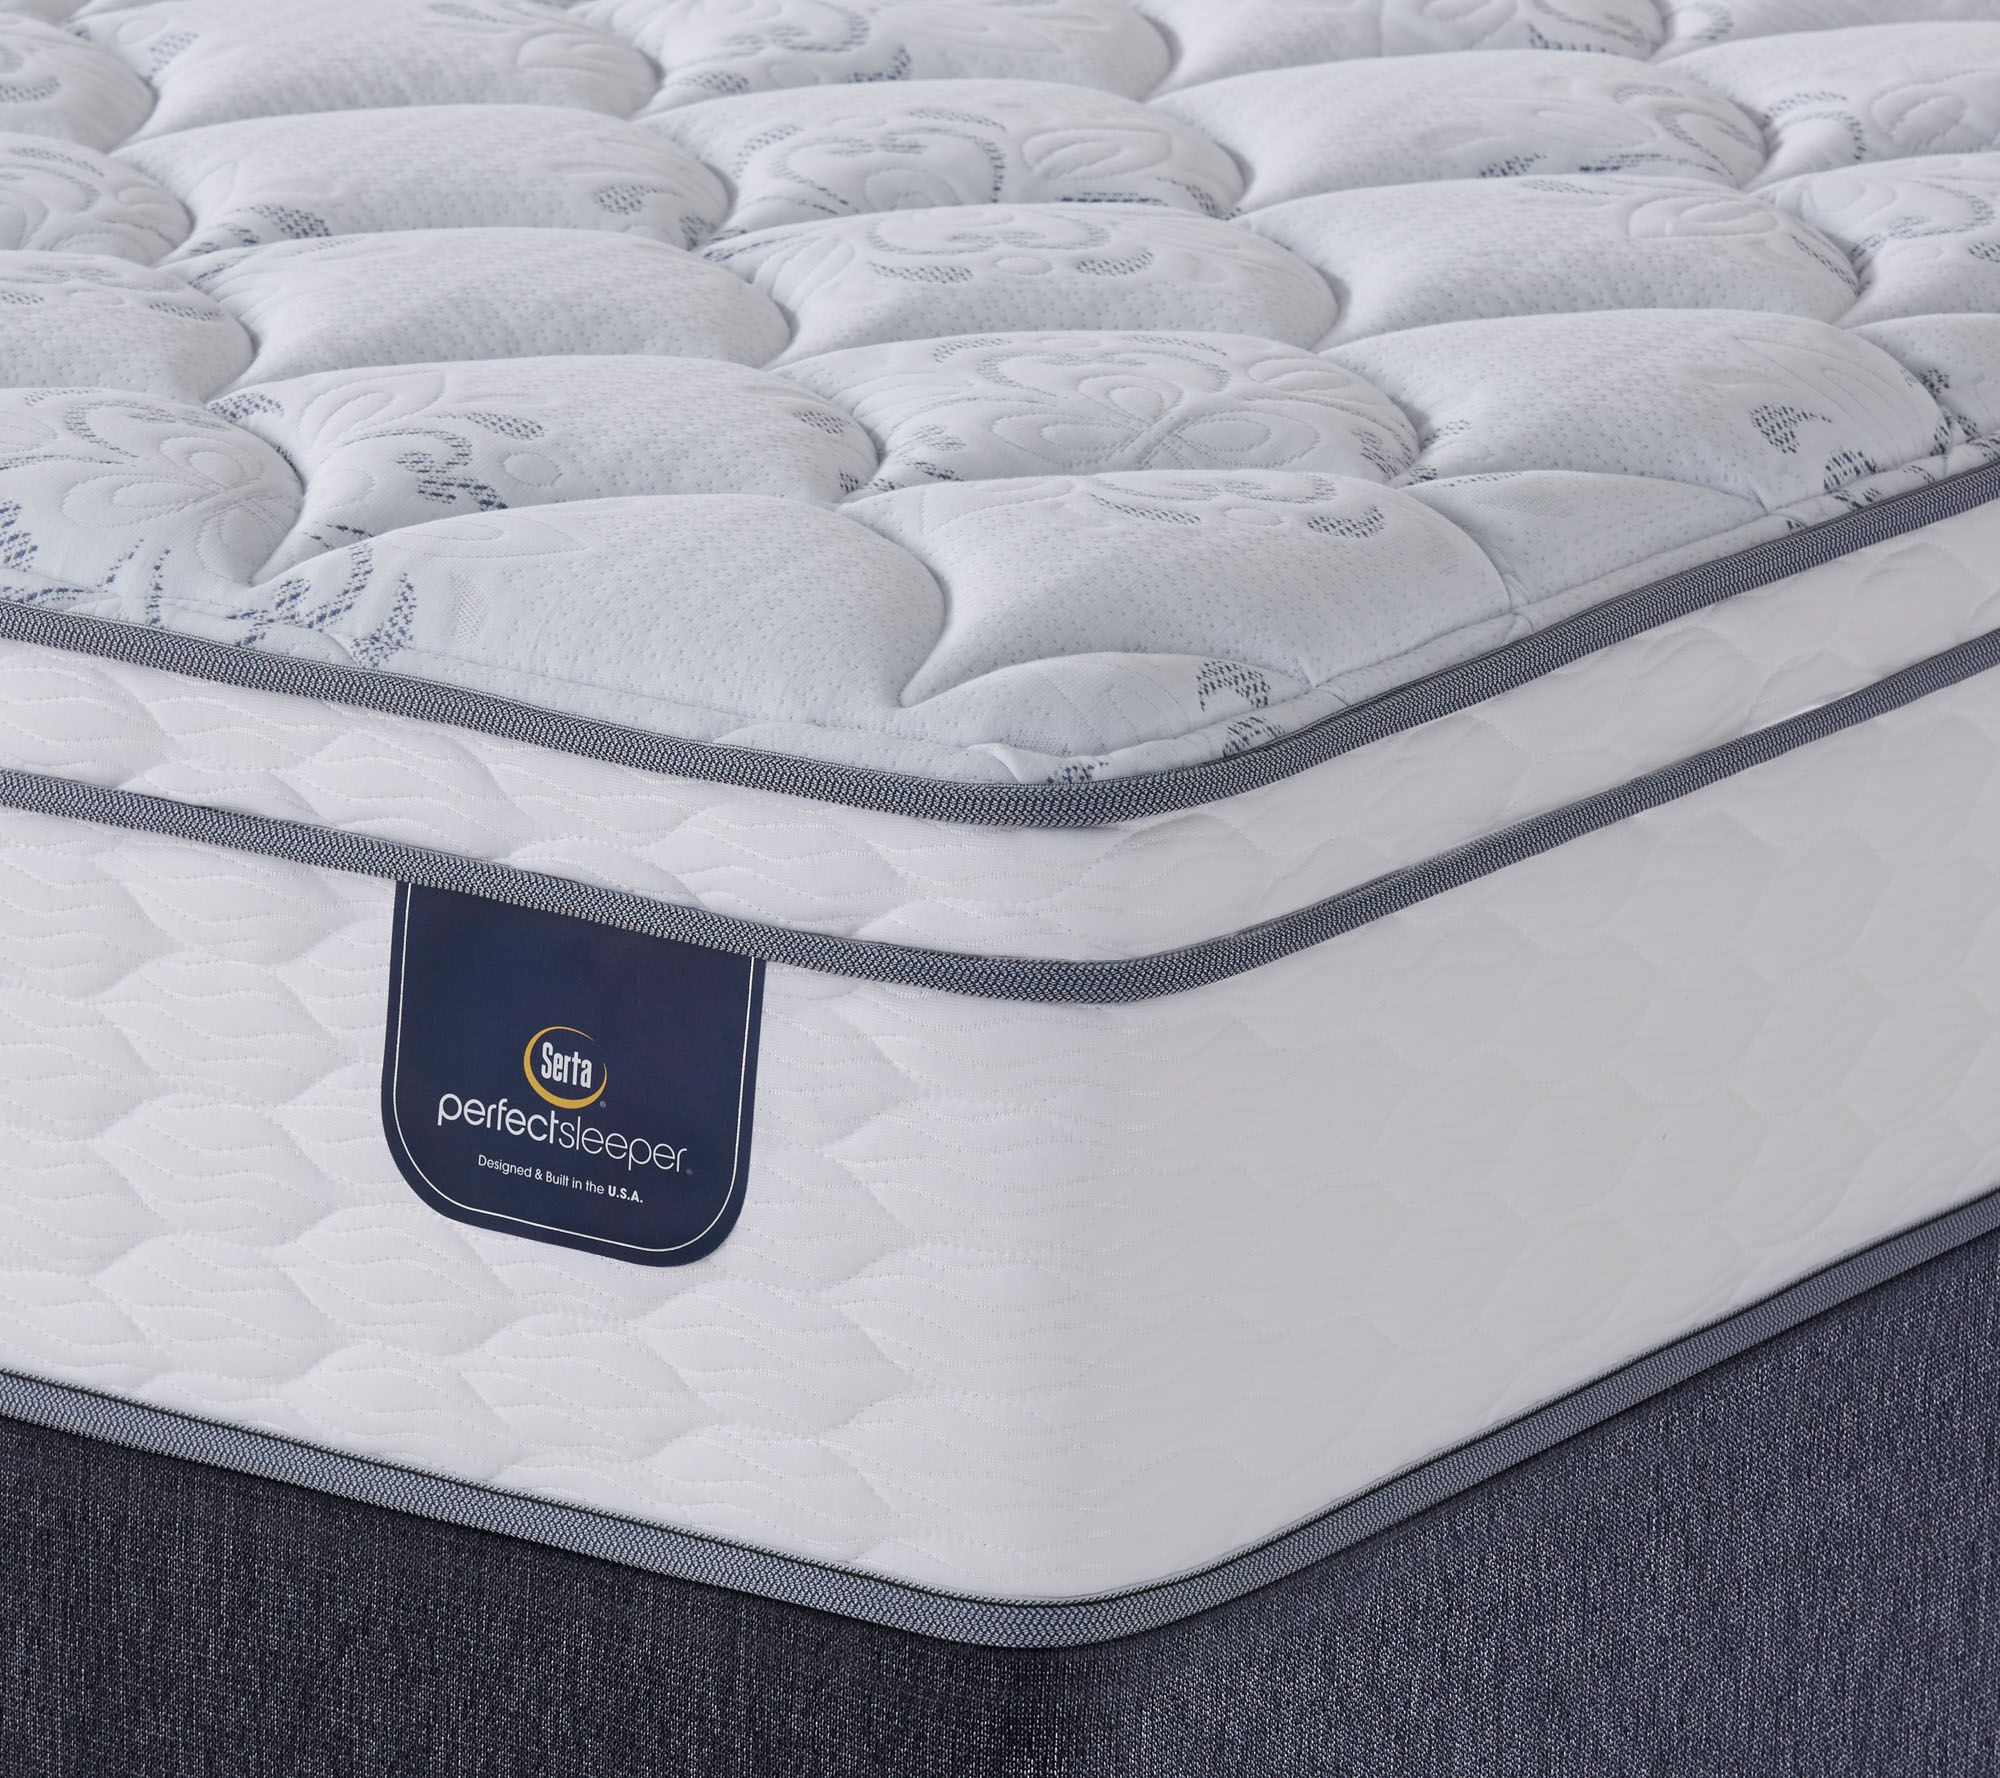 cup icomfort mom mattress sippy we the for mattresses shopping serta